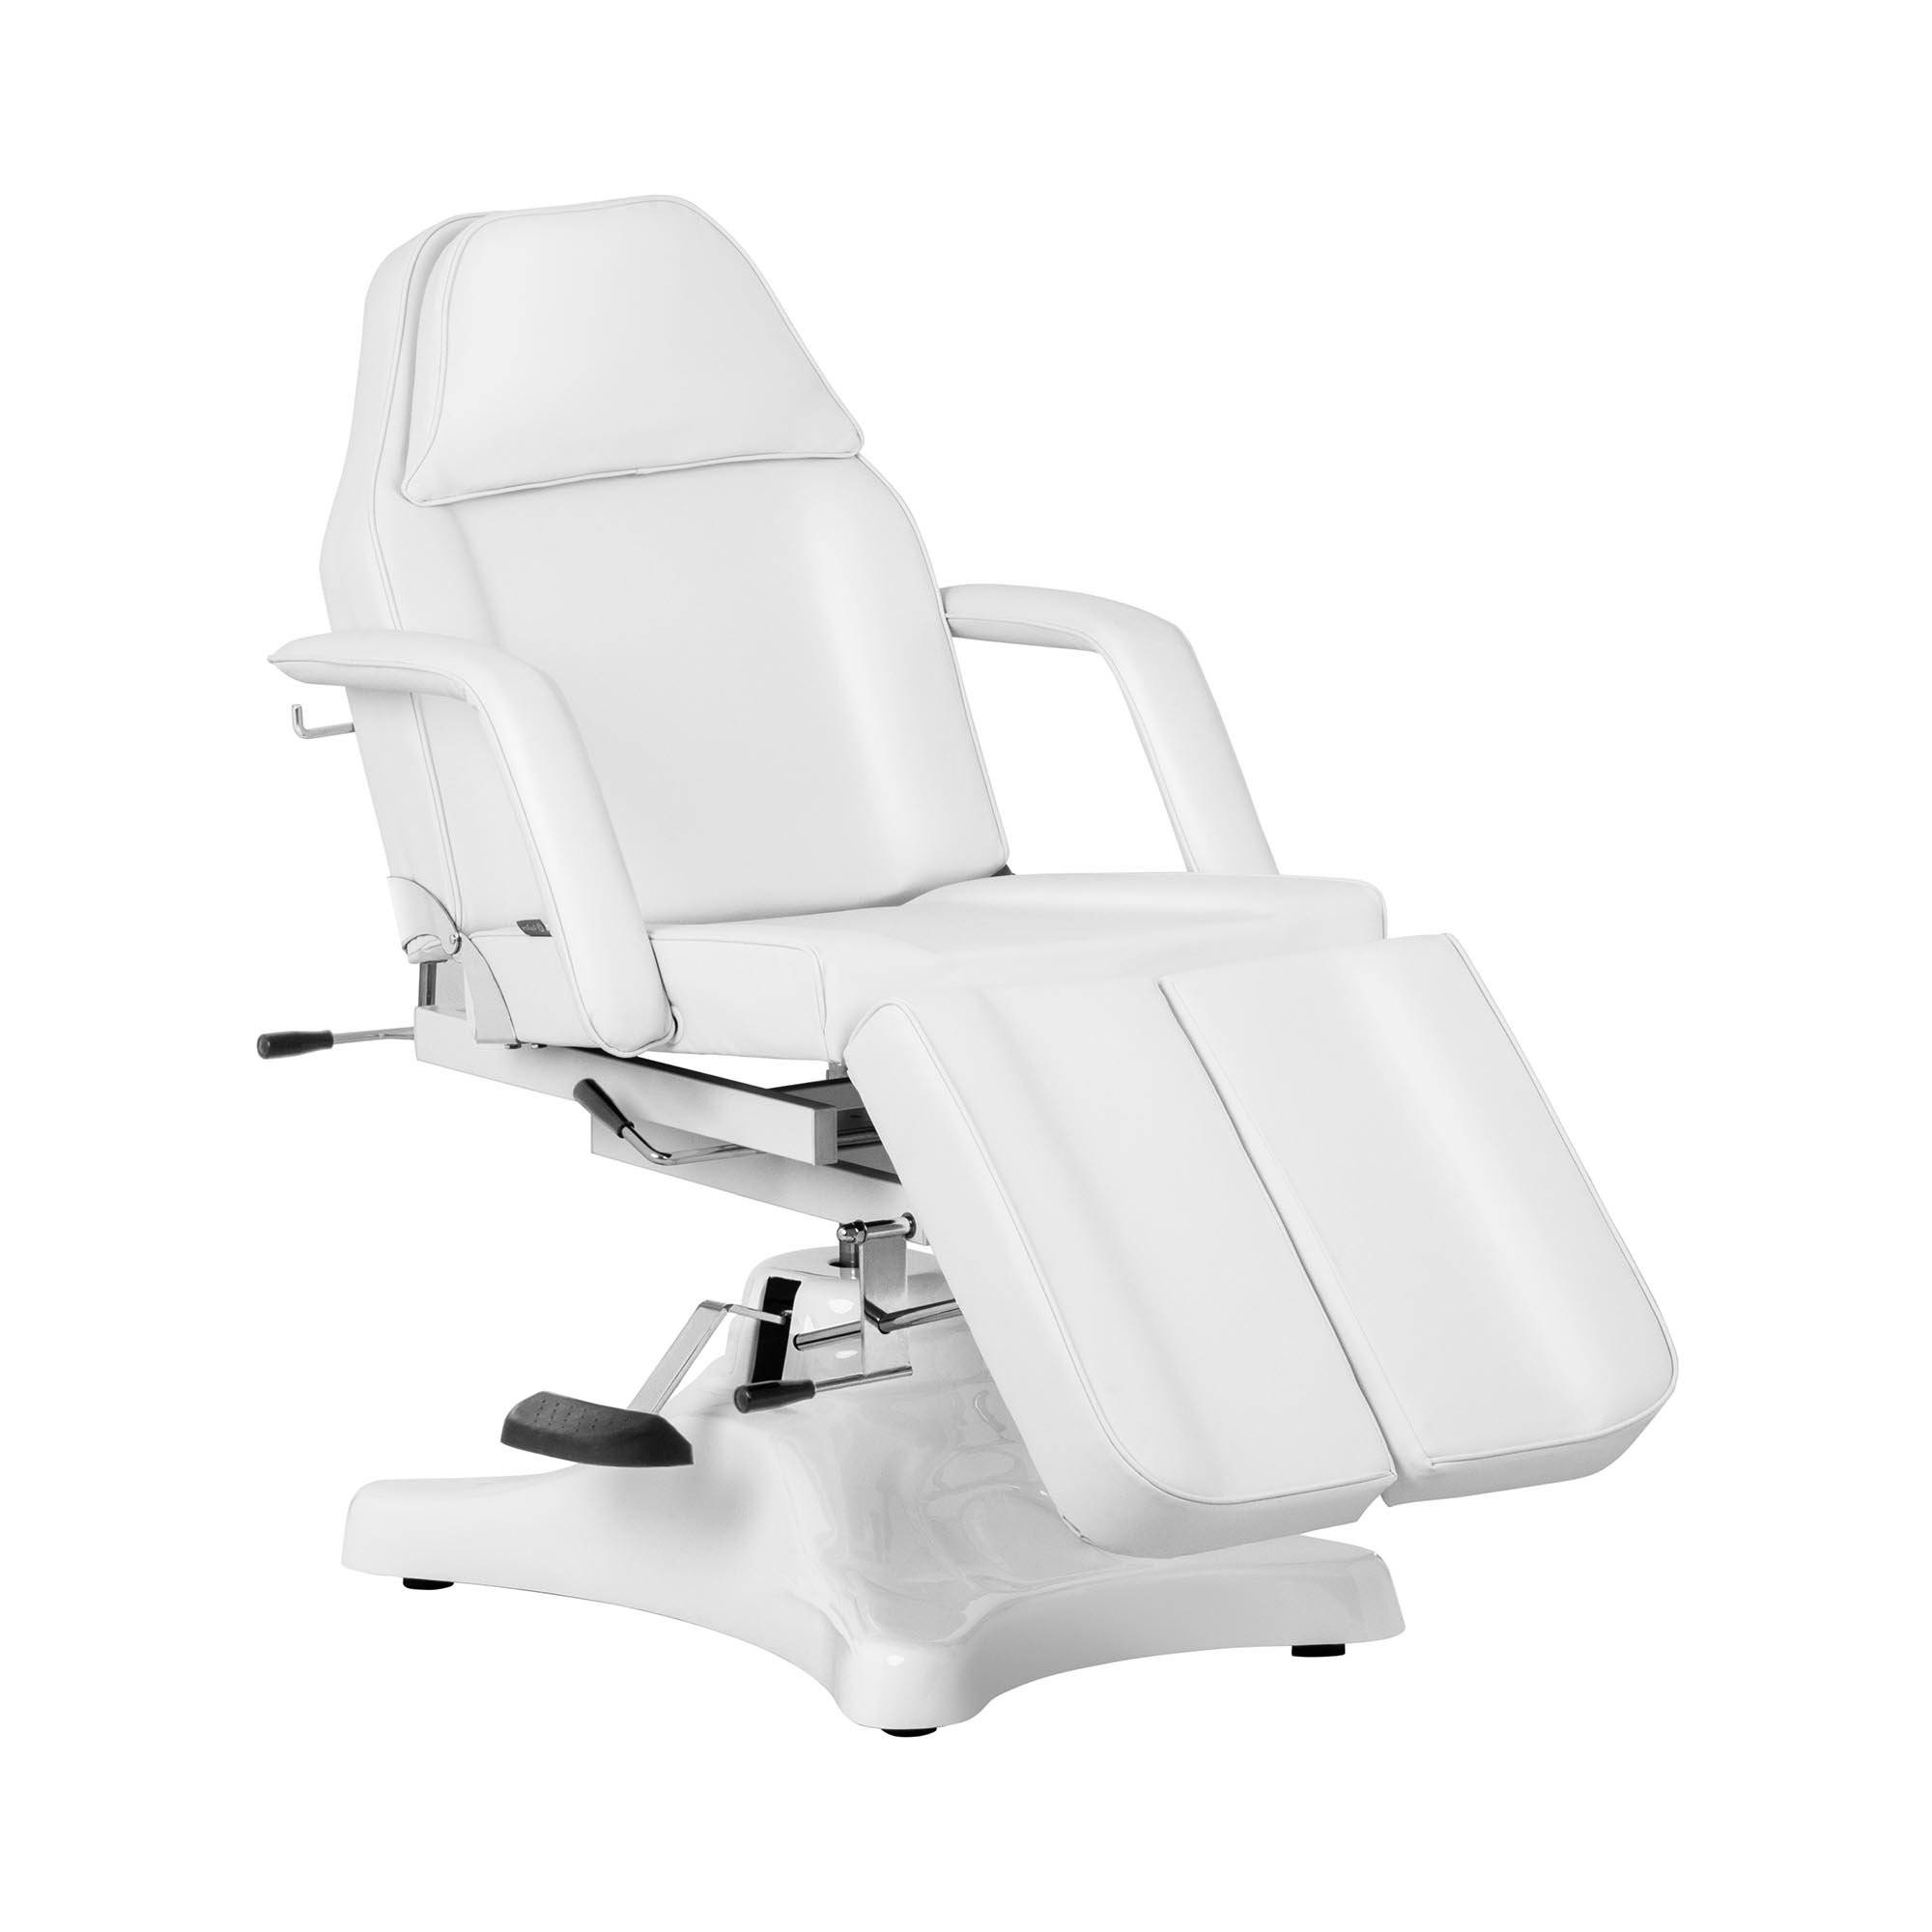 physa Hydraulic Pedicure Chair PHYSA ROSARIO WHITE